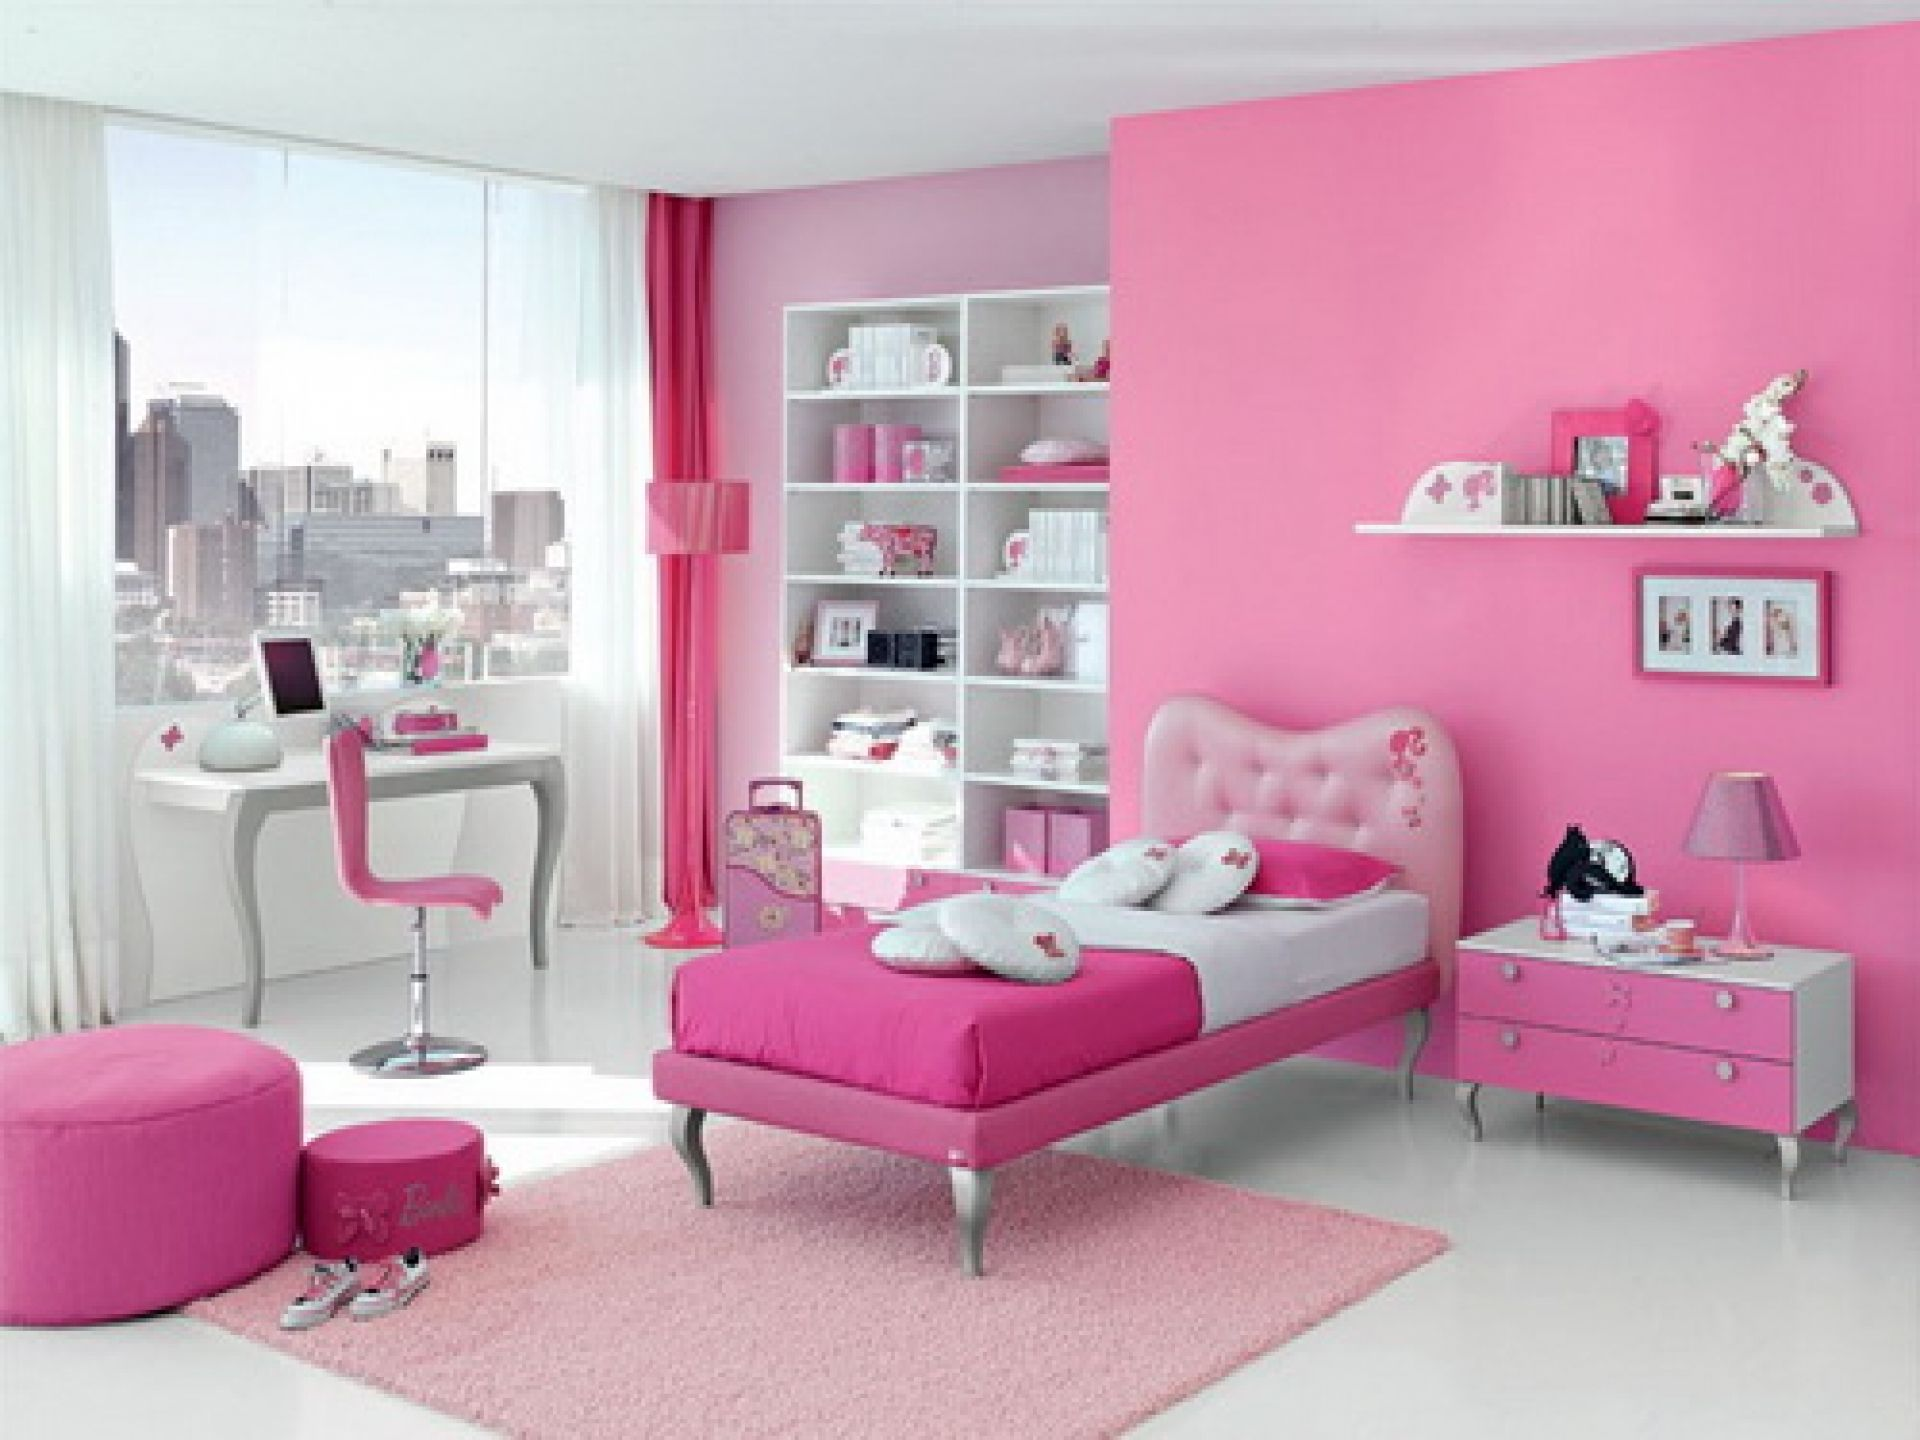 Bed For Teenage Girls bedroom, pink wall paint decoration glass curtain walls student